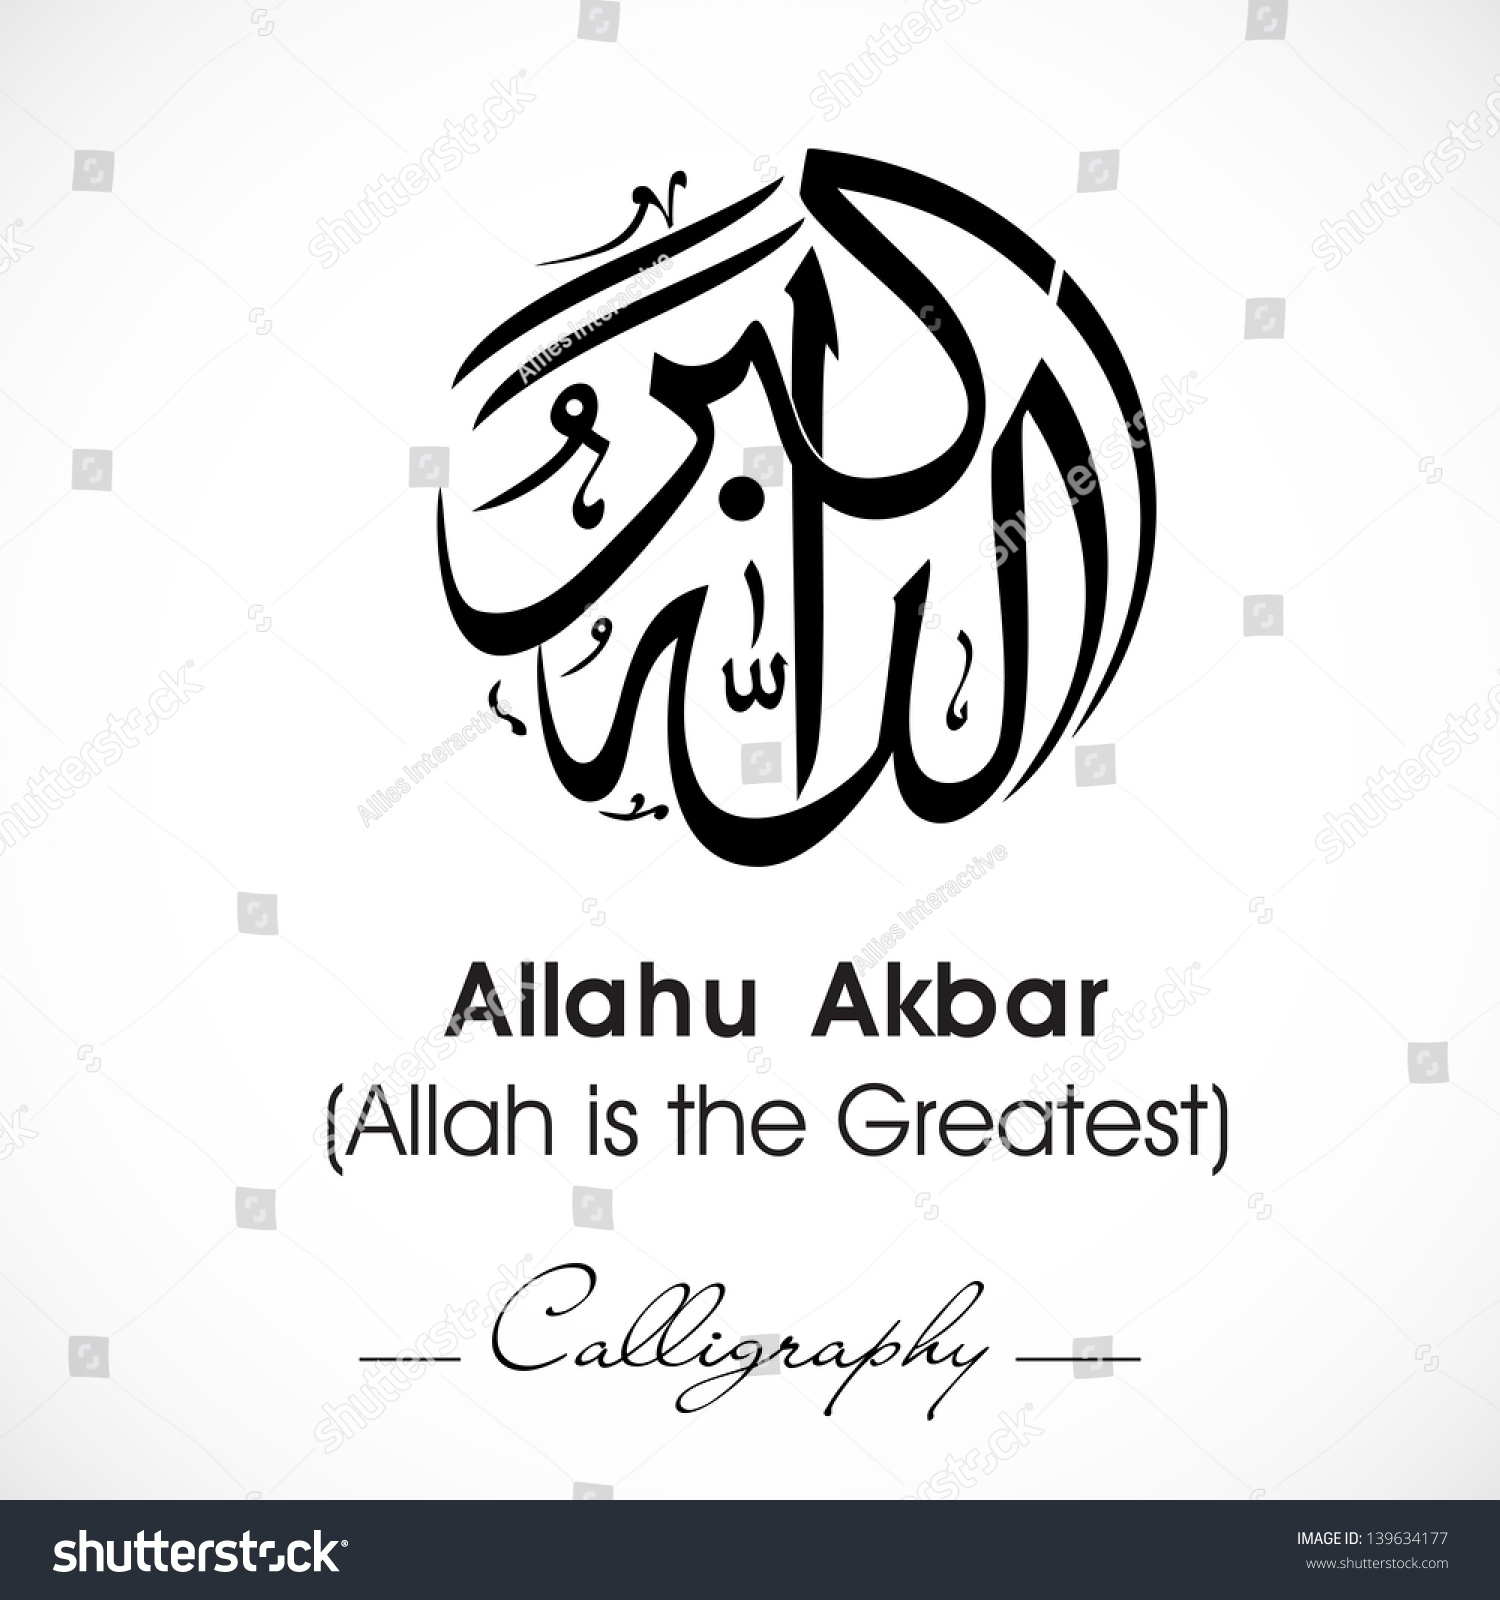 Arabic Islamic Calligraphy Duawish Allahu Akbar Stock: images of calligraphy